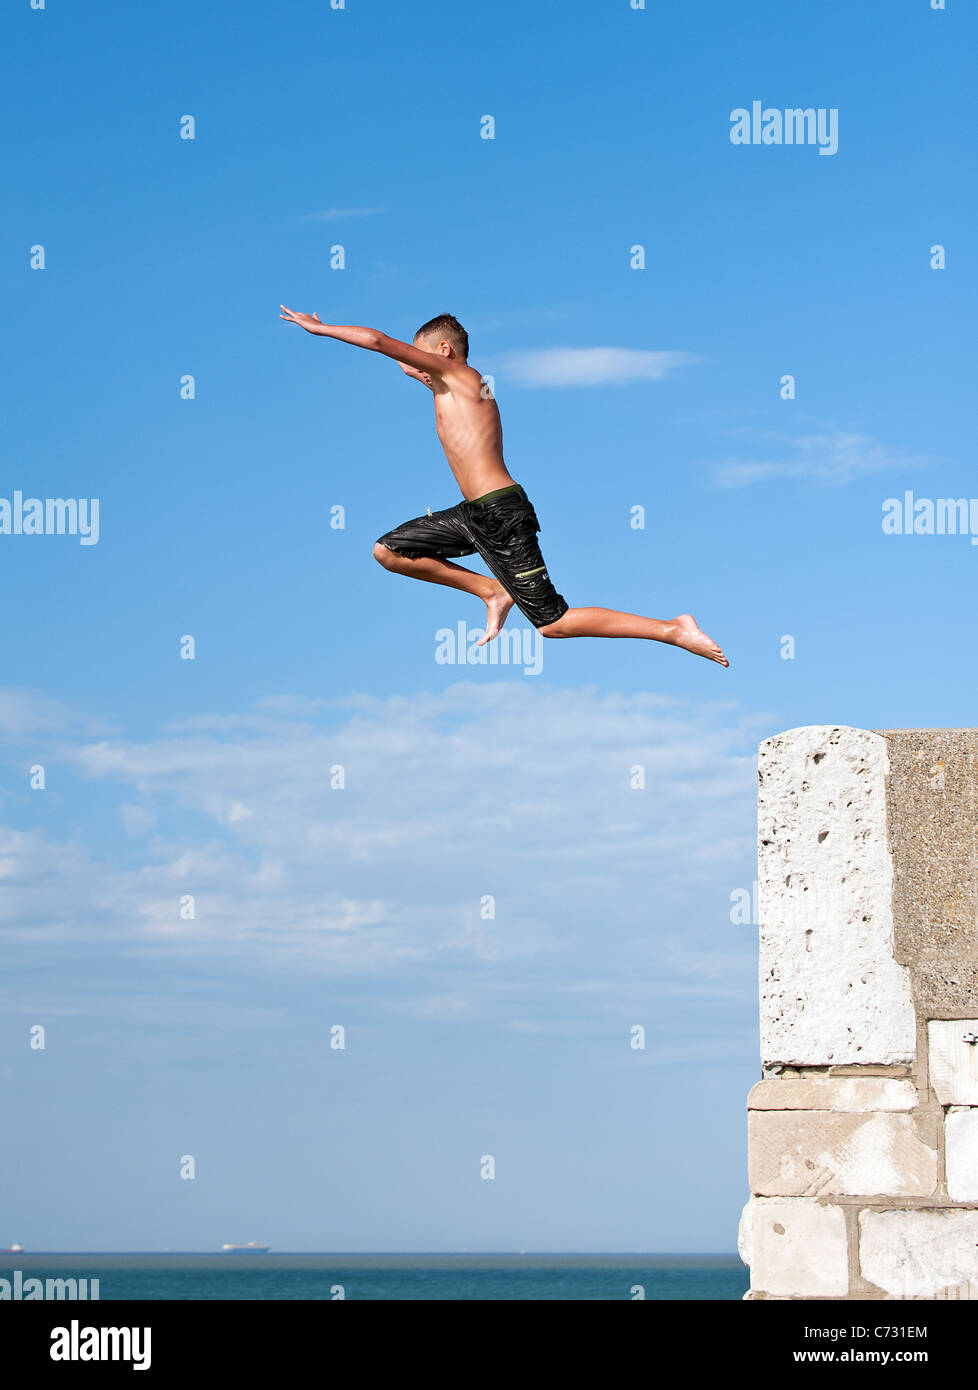 A boy tombstoninbg off the harbour arm in Margate. - Stock Image